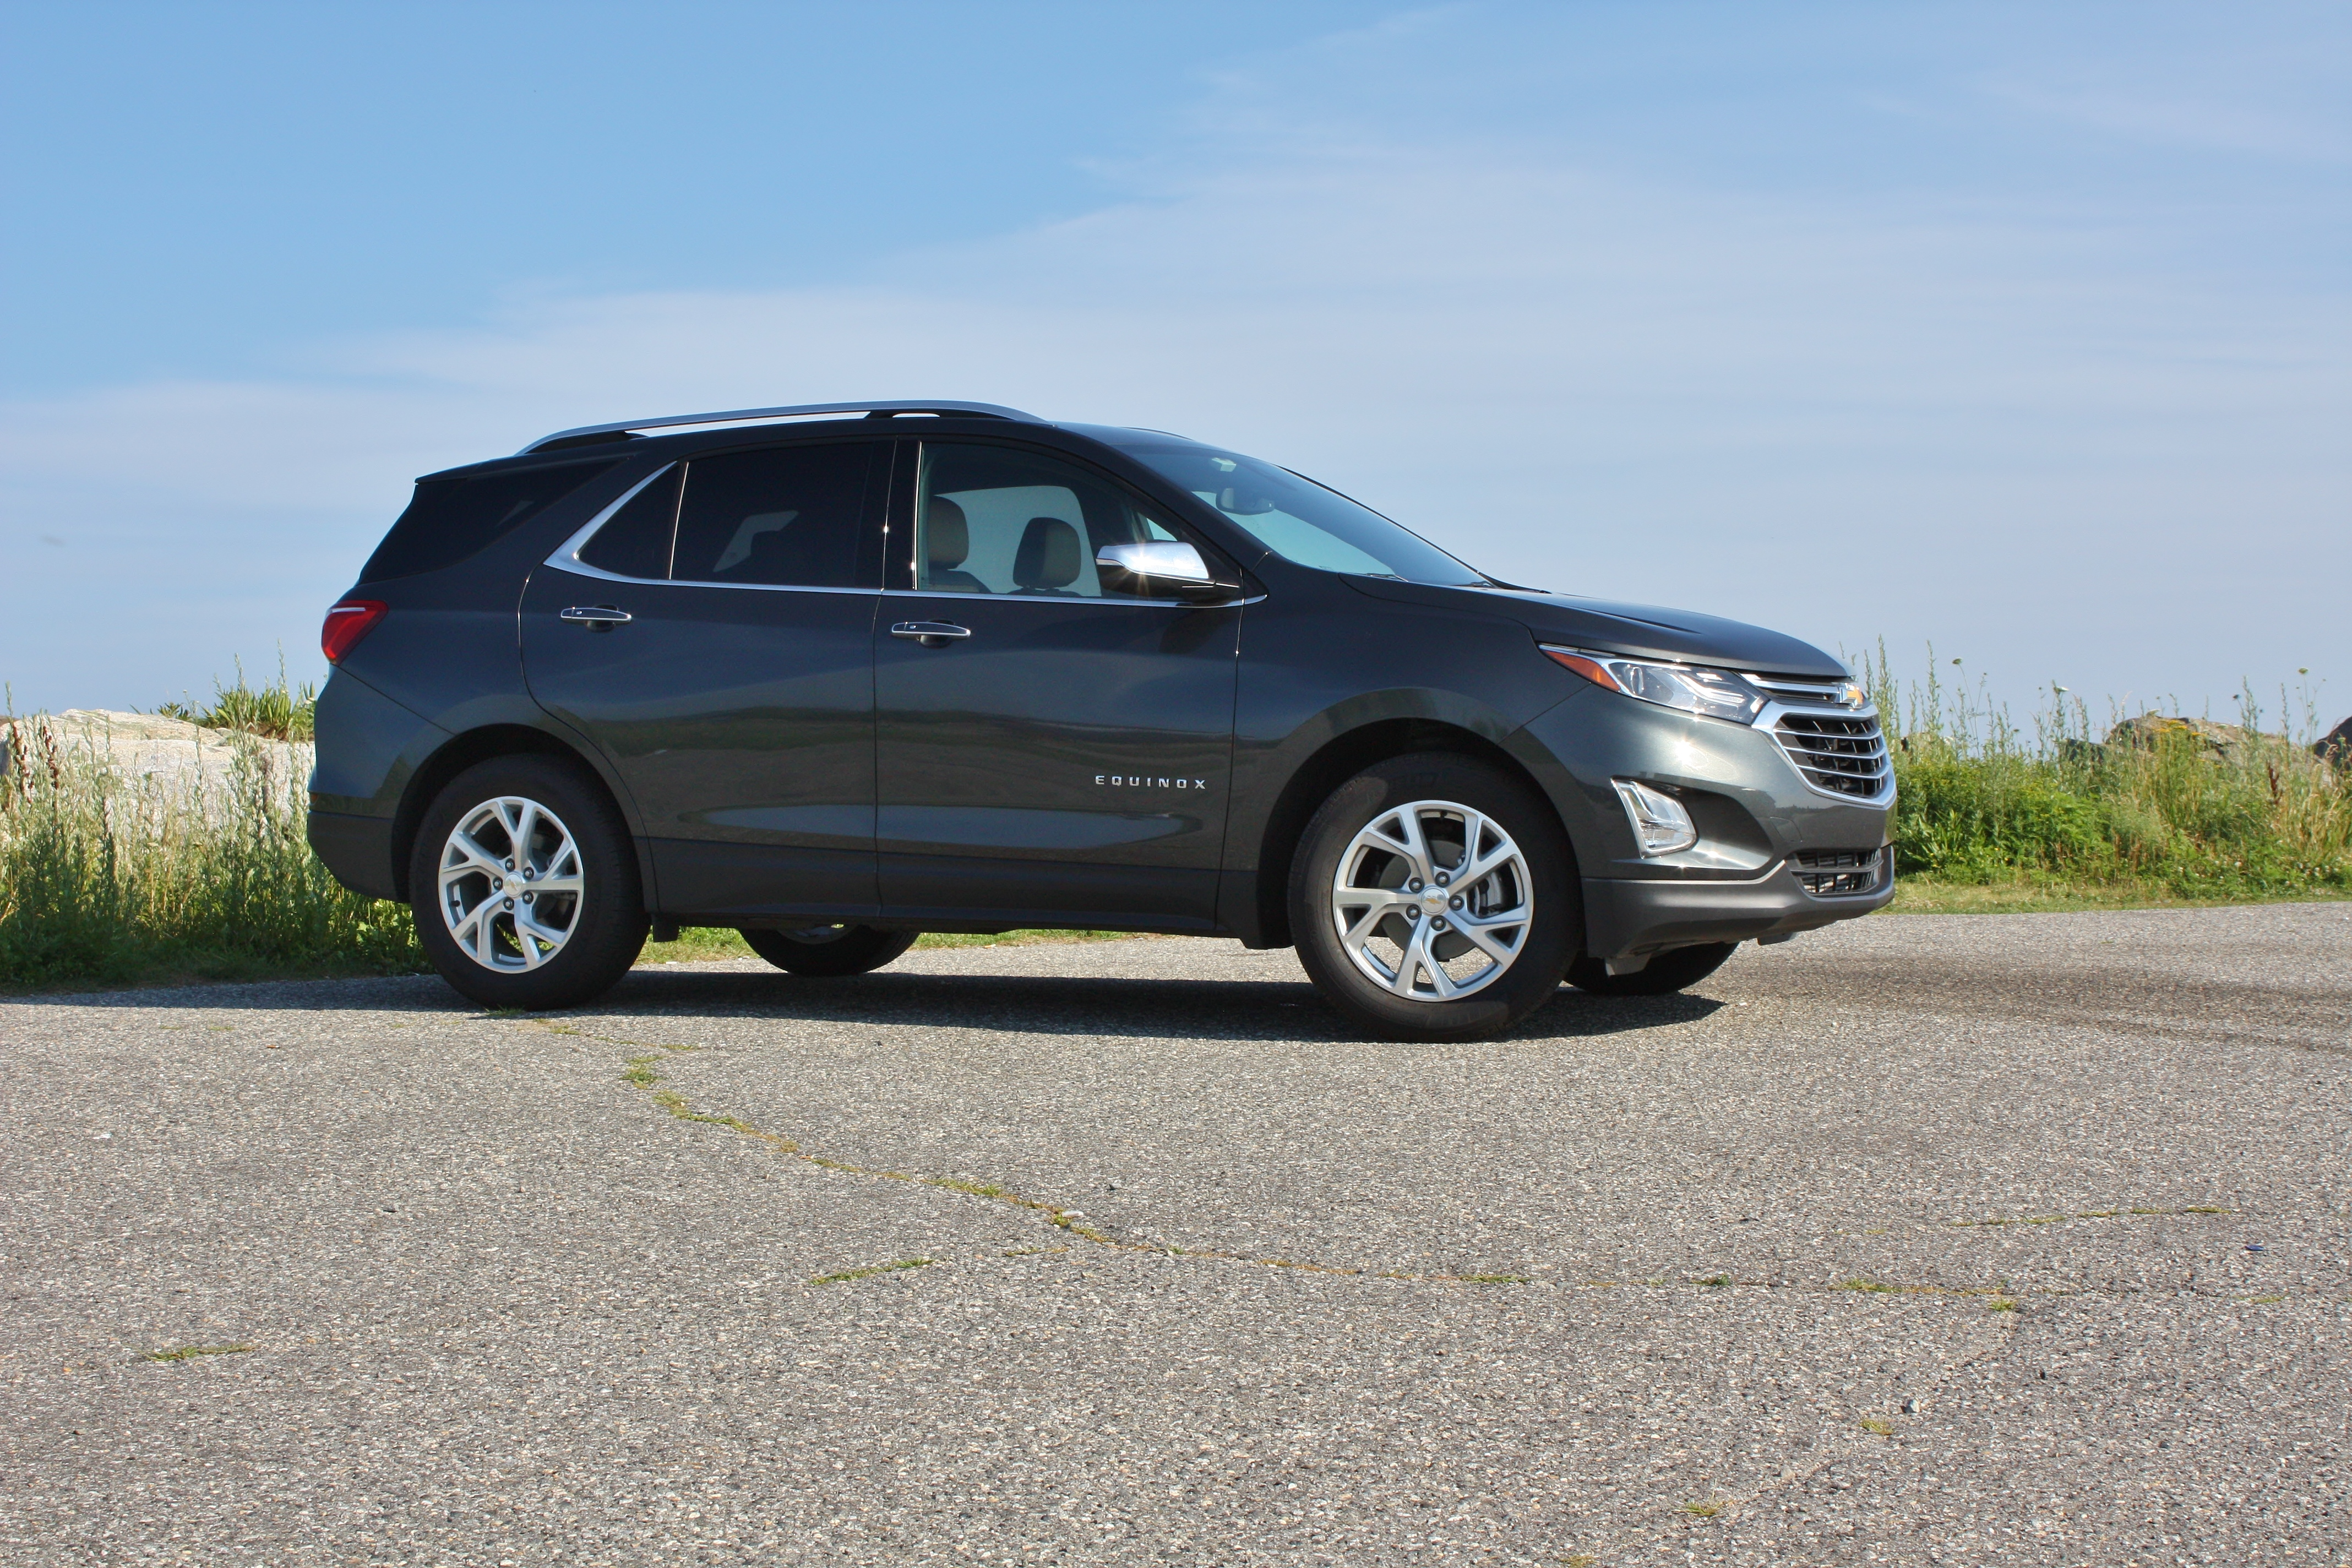 2018 chevrolet build.  chevrolet leaving our location in albany ny we headed northeast towards the new  hampshire coast with equinox and a full tank one quick stop for breakfast  on 2018 chevrolet build